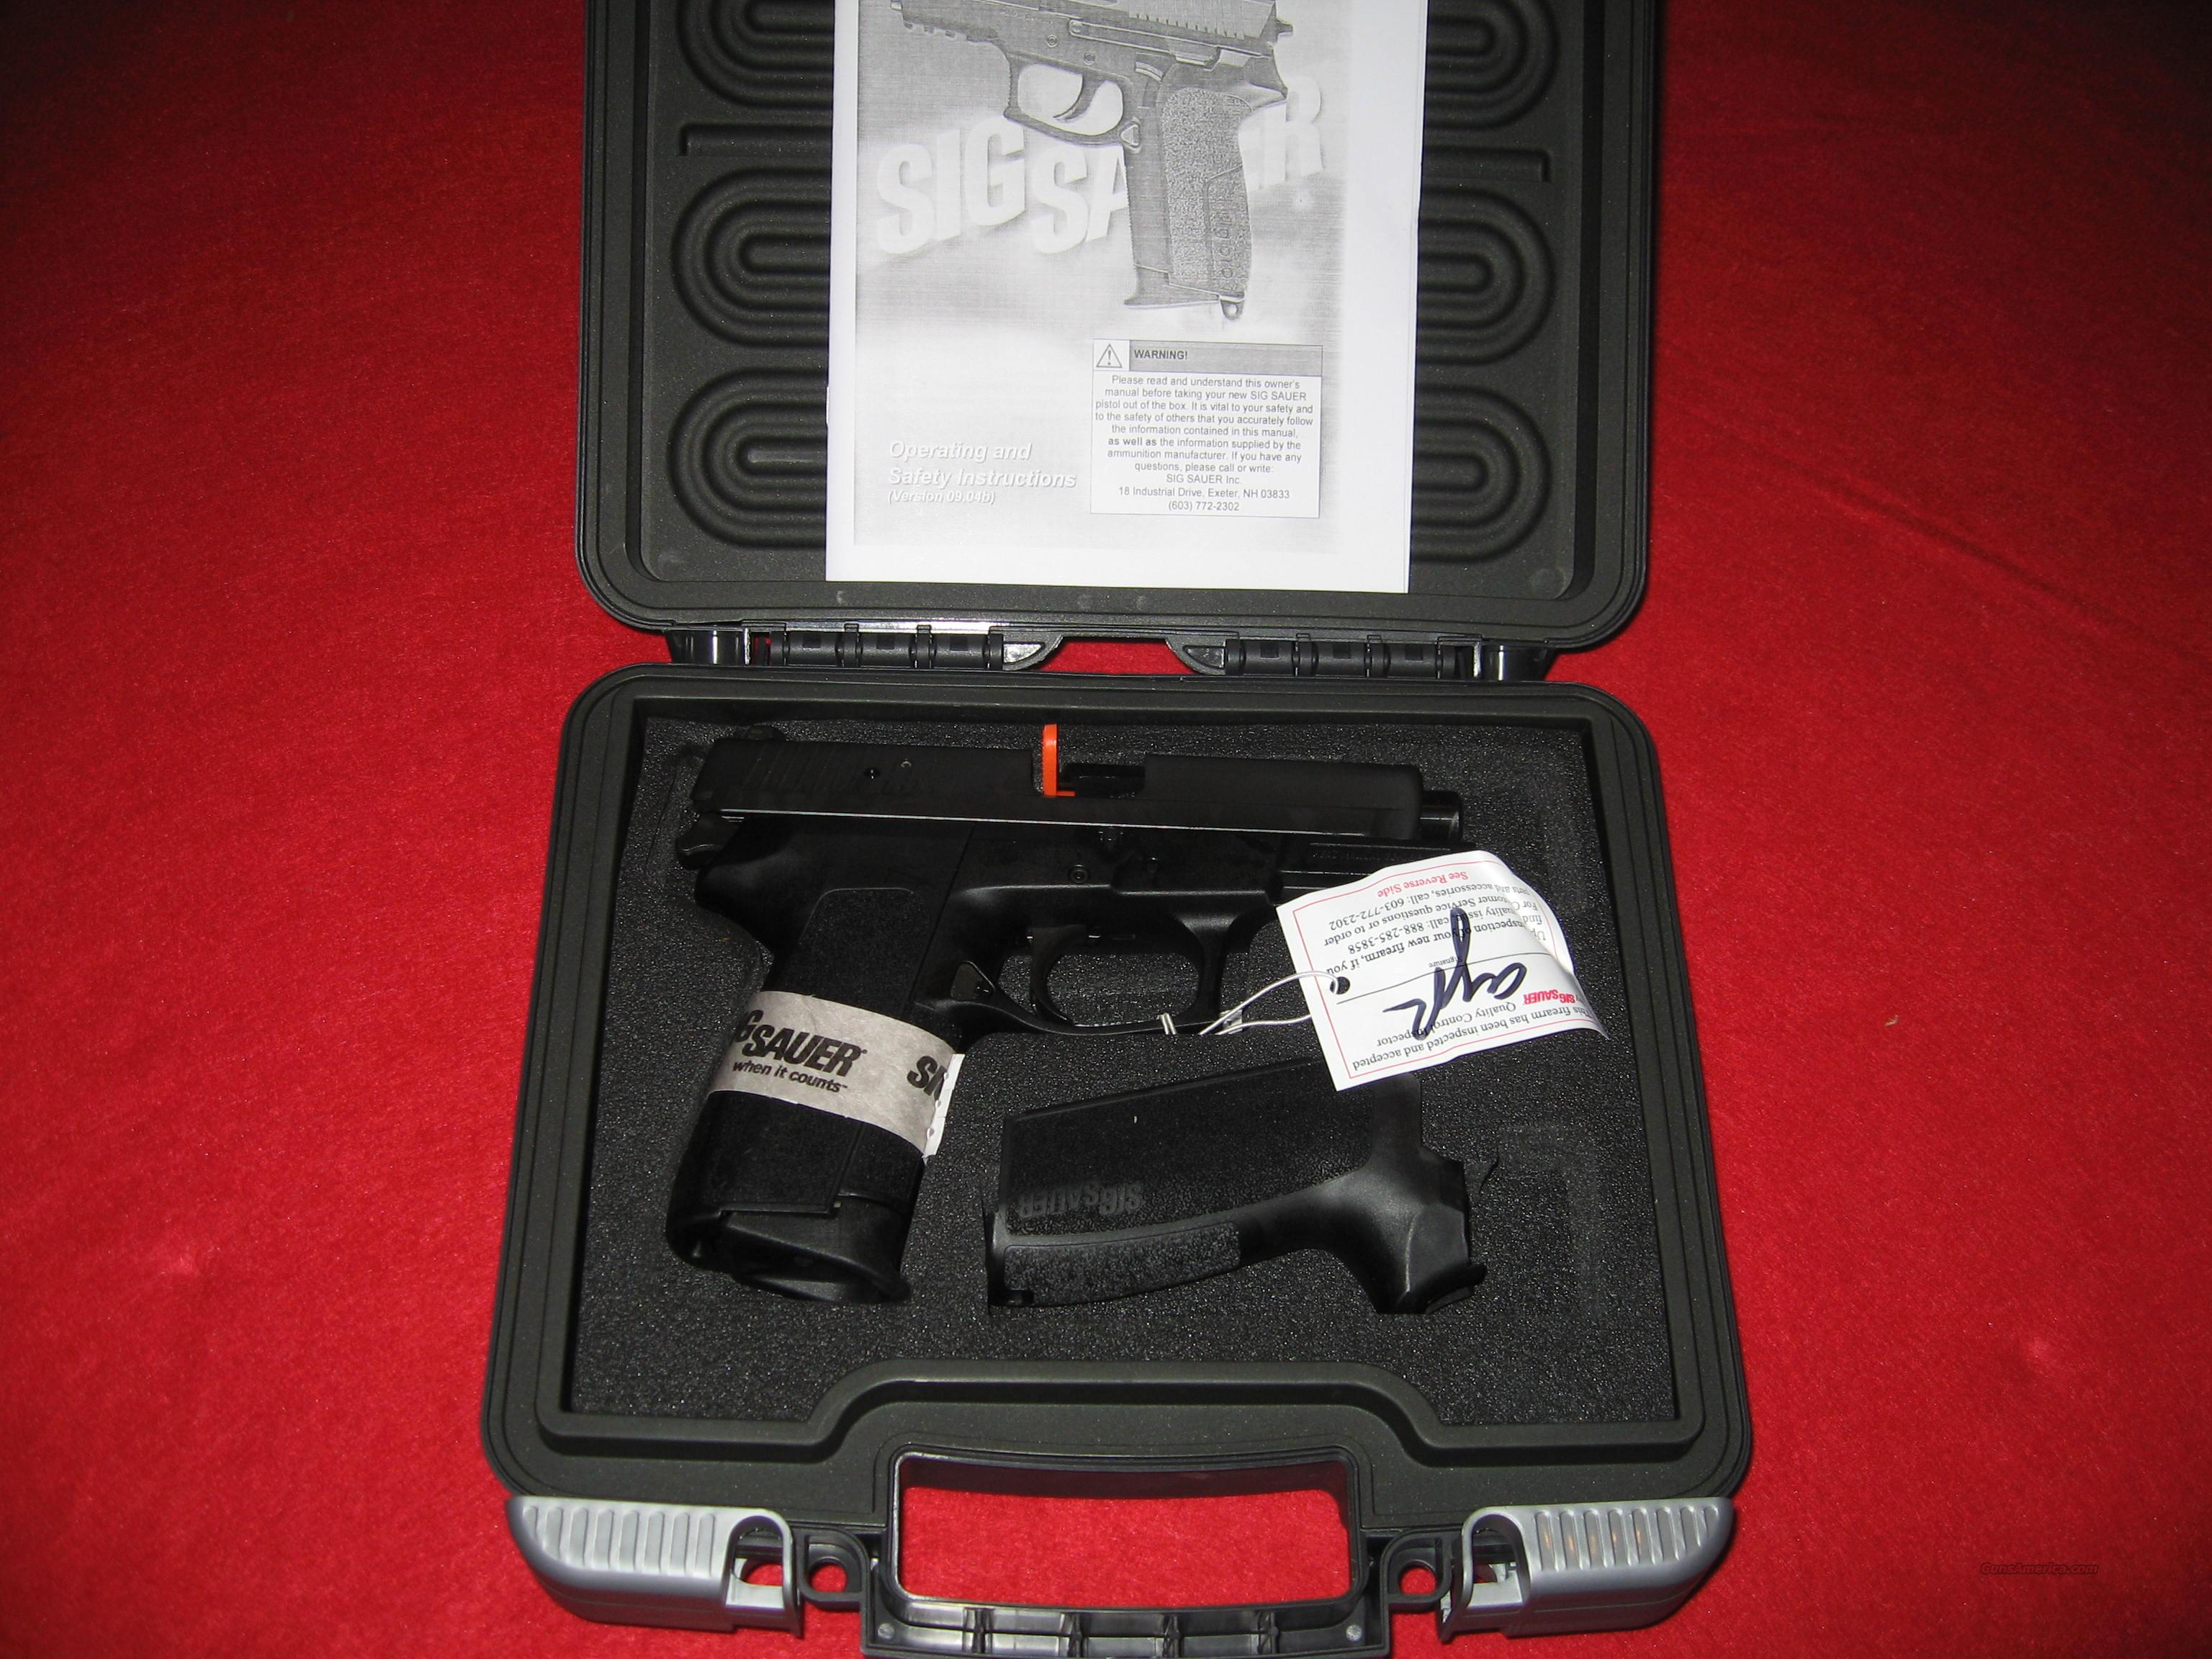 Sig Pro 2022 .40 cal New! Siglite Night Sights! CA. Legal !!!Layaway!!!  Guns > Pistols > Sig - Sauer/Sigarms Pistols > 2022